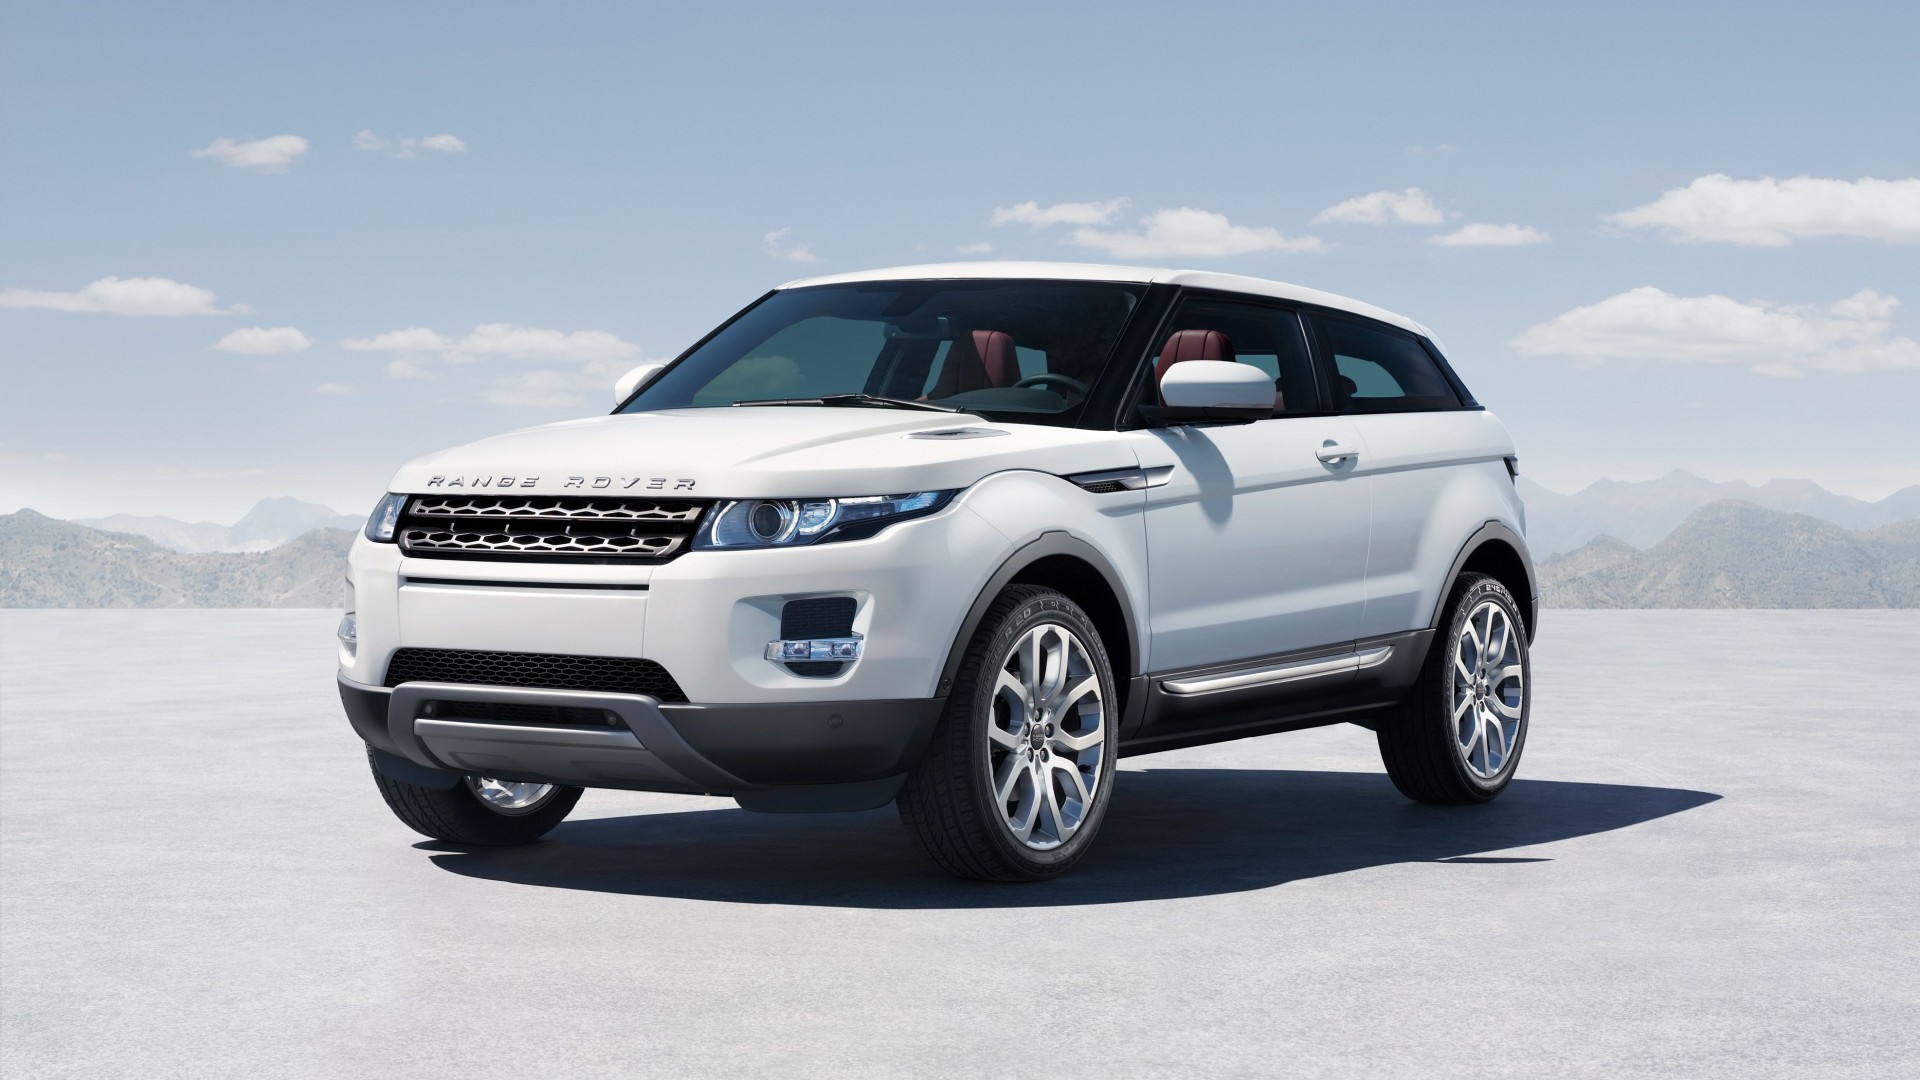 Range Rover Evoque, crossover, luxury cars, sports car, SUV, Ecoboost, test drive, buy rent, review (horizontal)